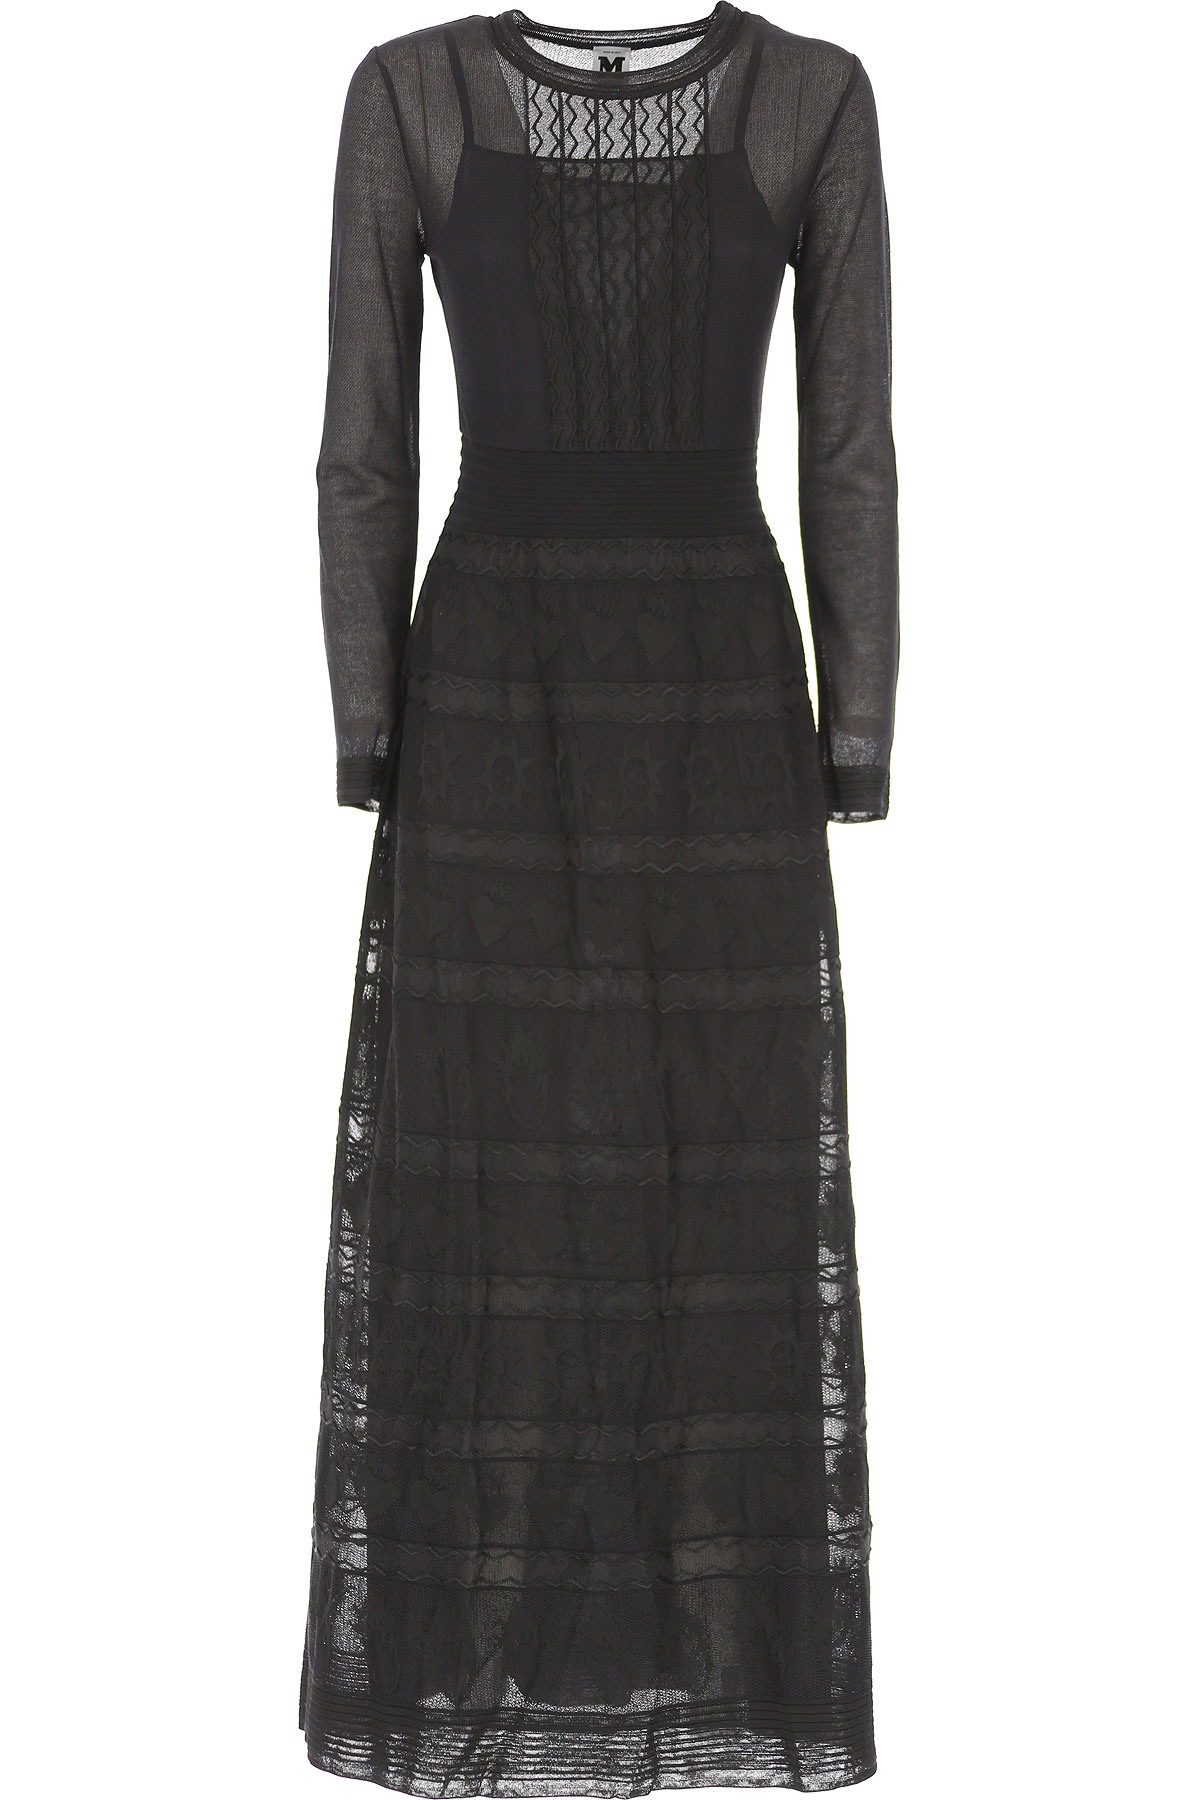 Image of Missoni Dress for Women, Evening Cocktail Party, Black, Viscose, 2017, 4 6